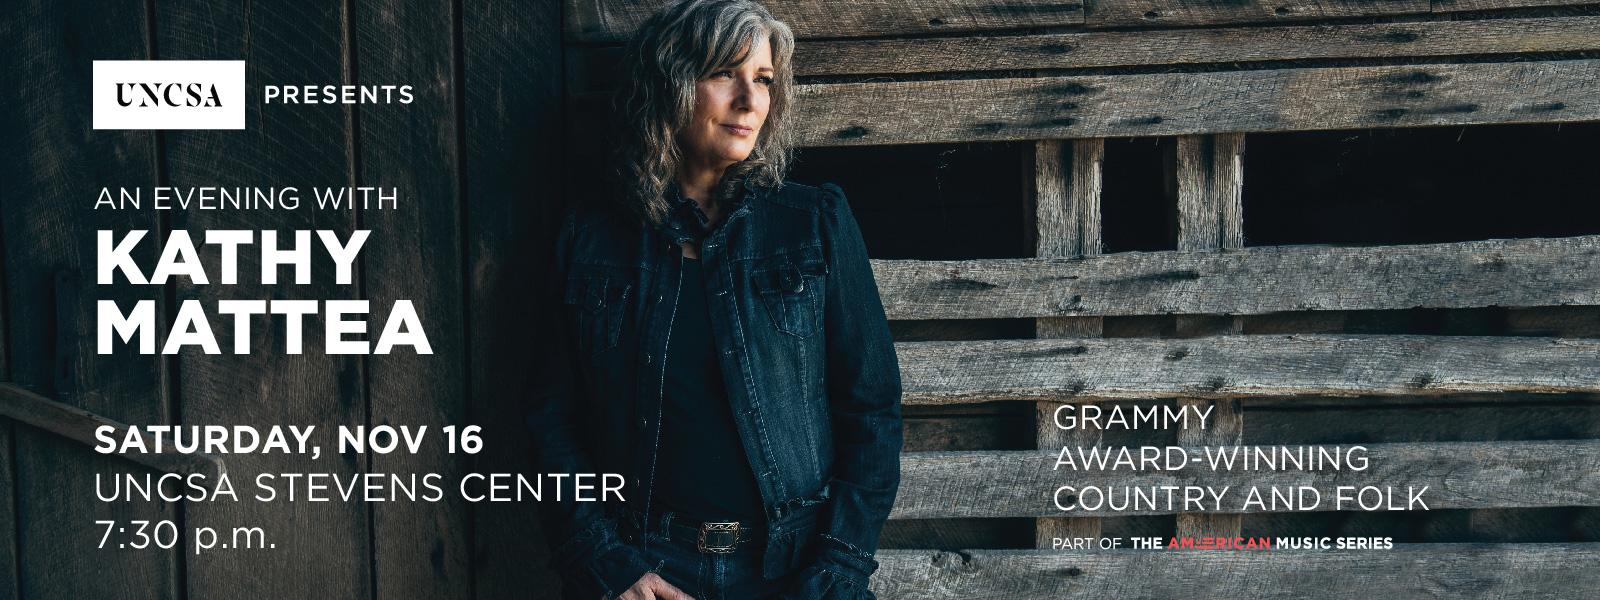 Join us for An Evening with Kathy Mattea at the Stevens Center.>>BUY TICKETS